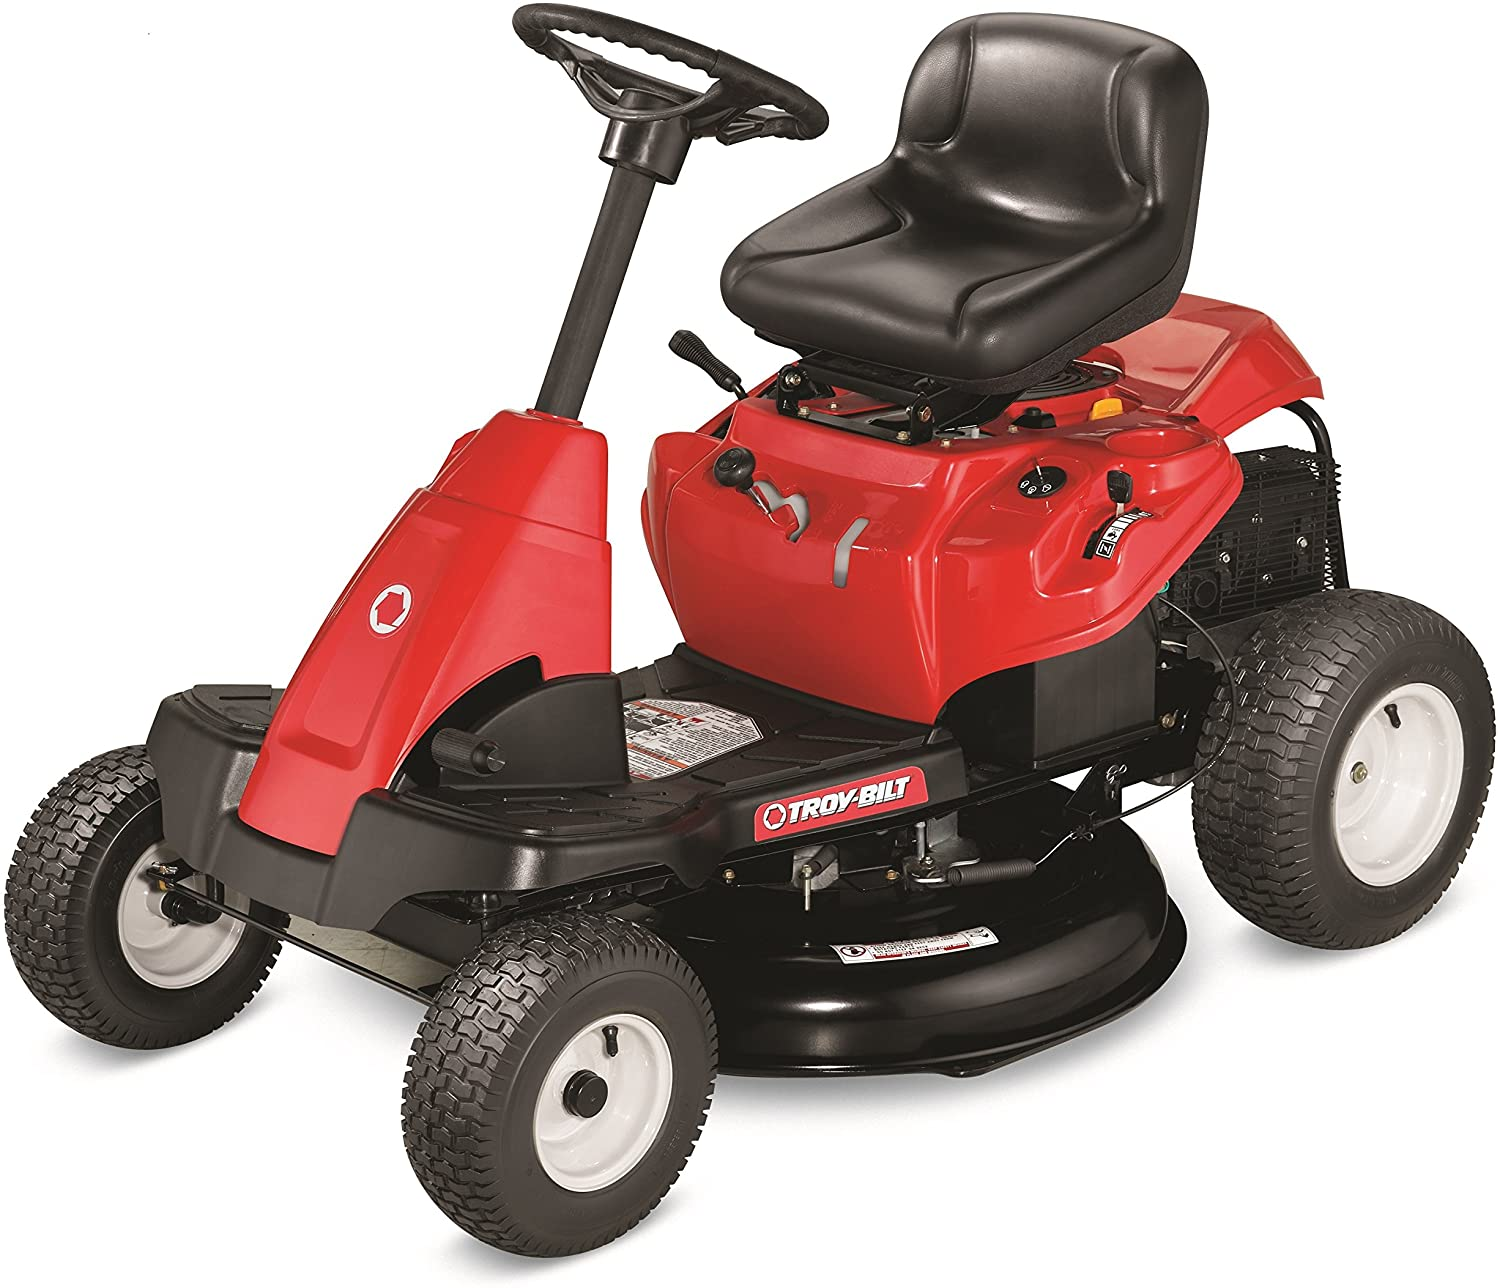 Troy-Bilt 382cc 30-Inch Riding Lawn Mower - A Review of the Best Cheap Riding Lawn Mowers in 2021